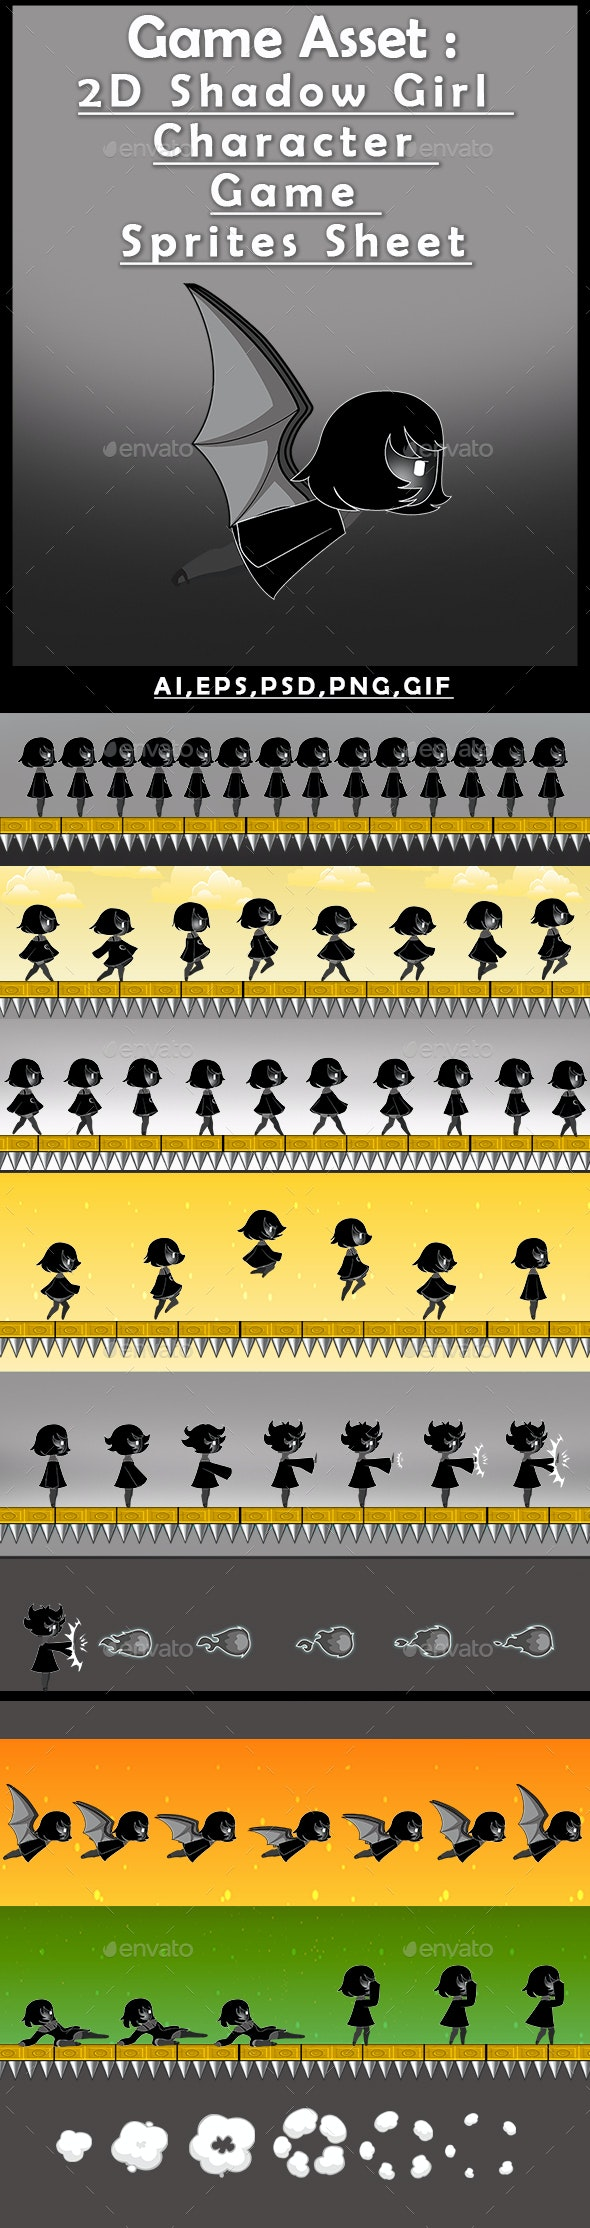 Game Asset : 2D Shadow Girl Character Game Sprites Sheet - Sprites Game Assets